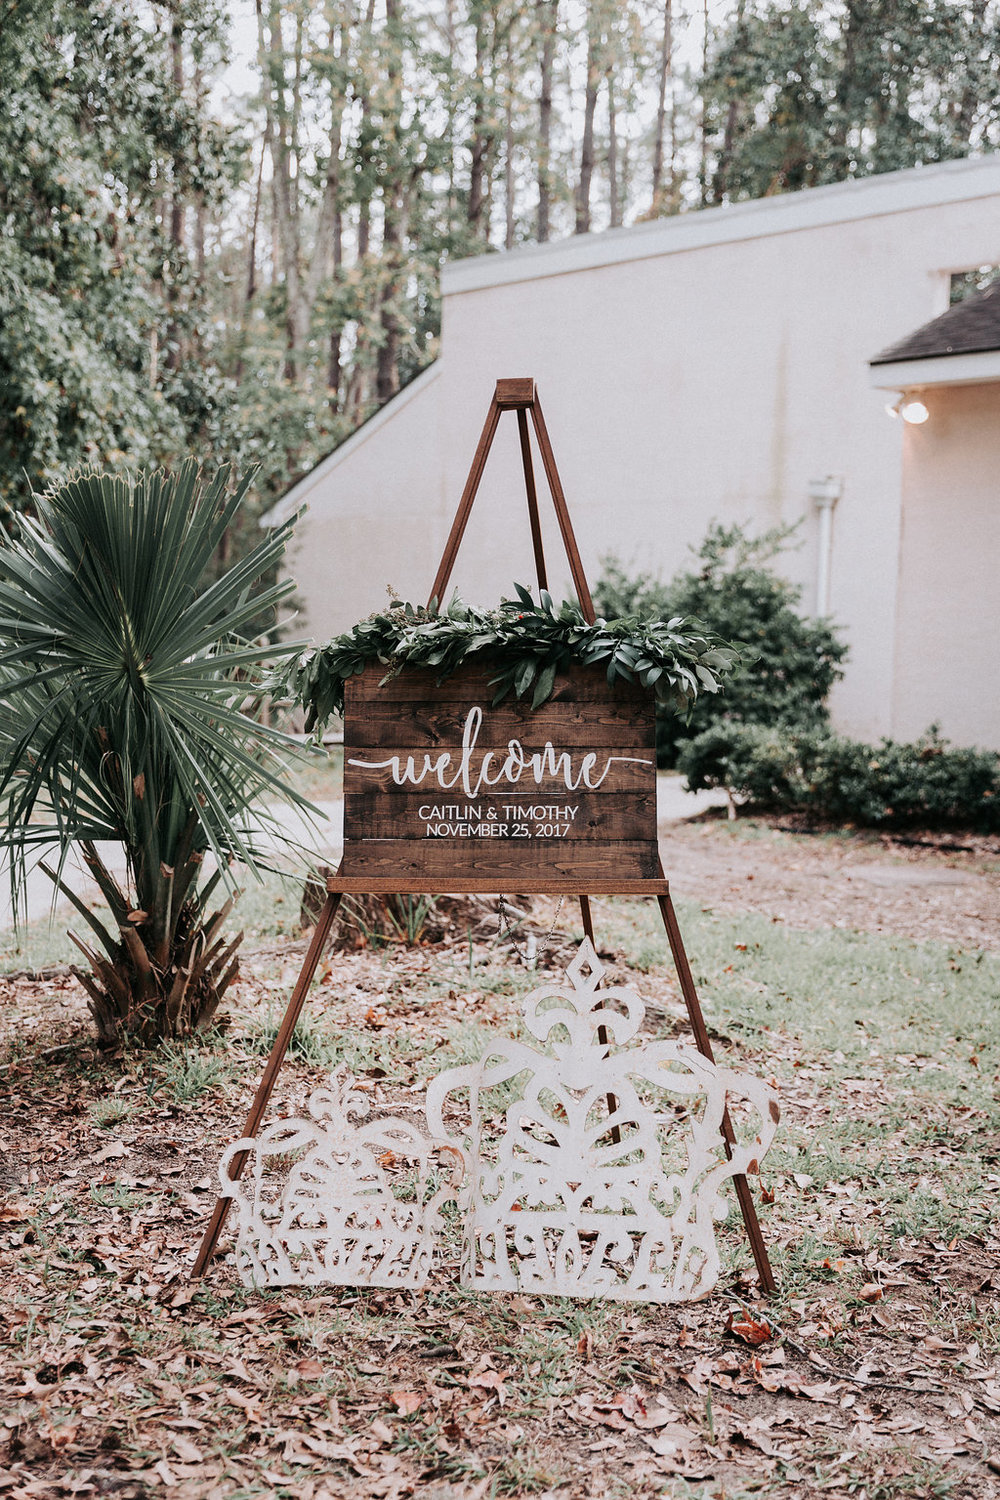 ivory-and-beau-savannah-bridal-shop-ivory-and-beau-couple-caitlin-and-tim-wormsloe-wedding-savannah-wedding-florist-house-of-ivory-photography-32.jpg